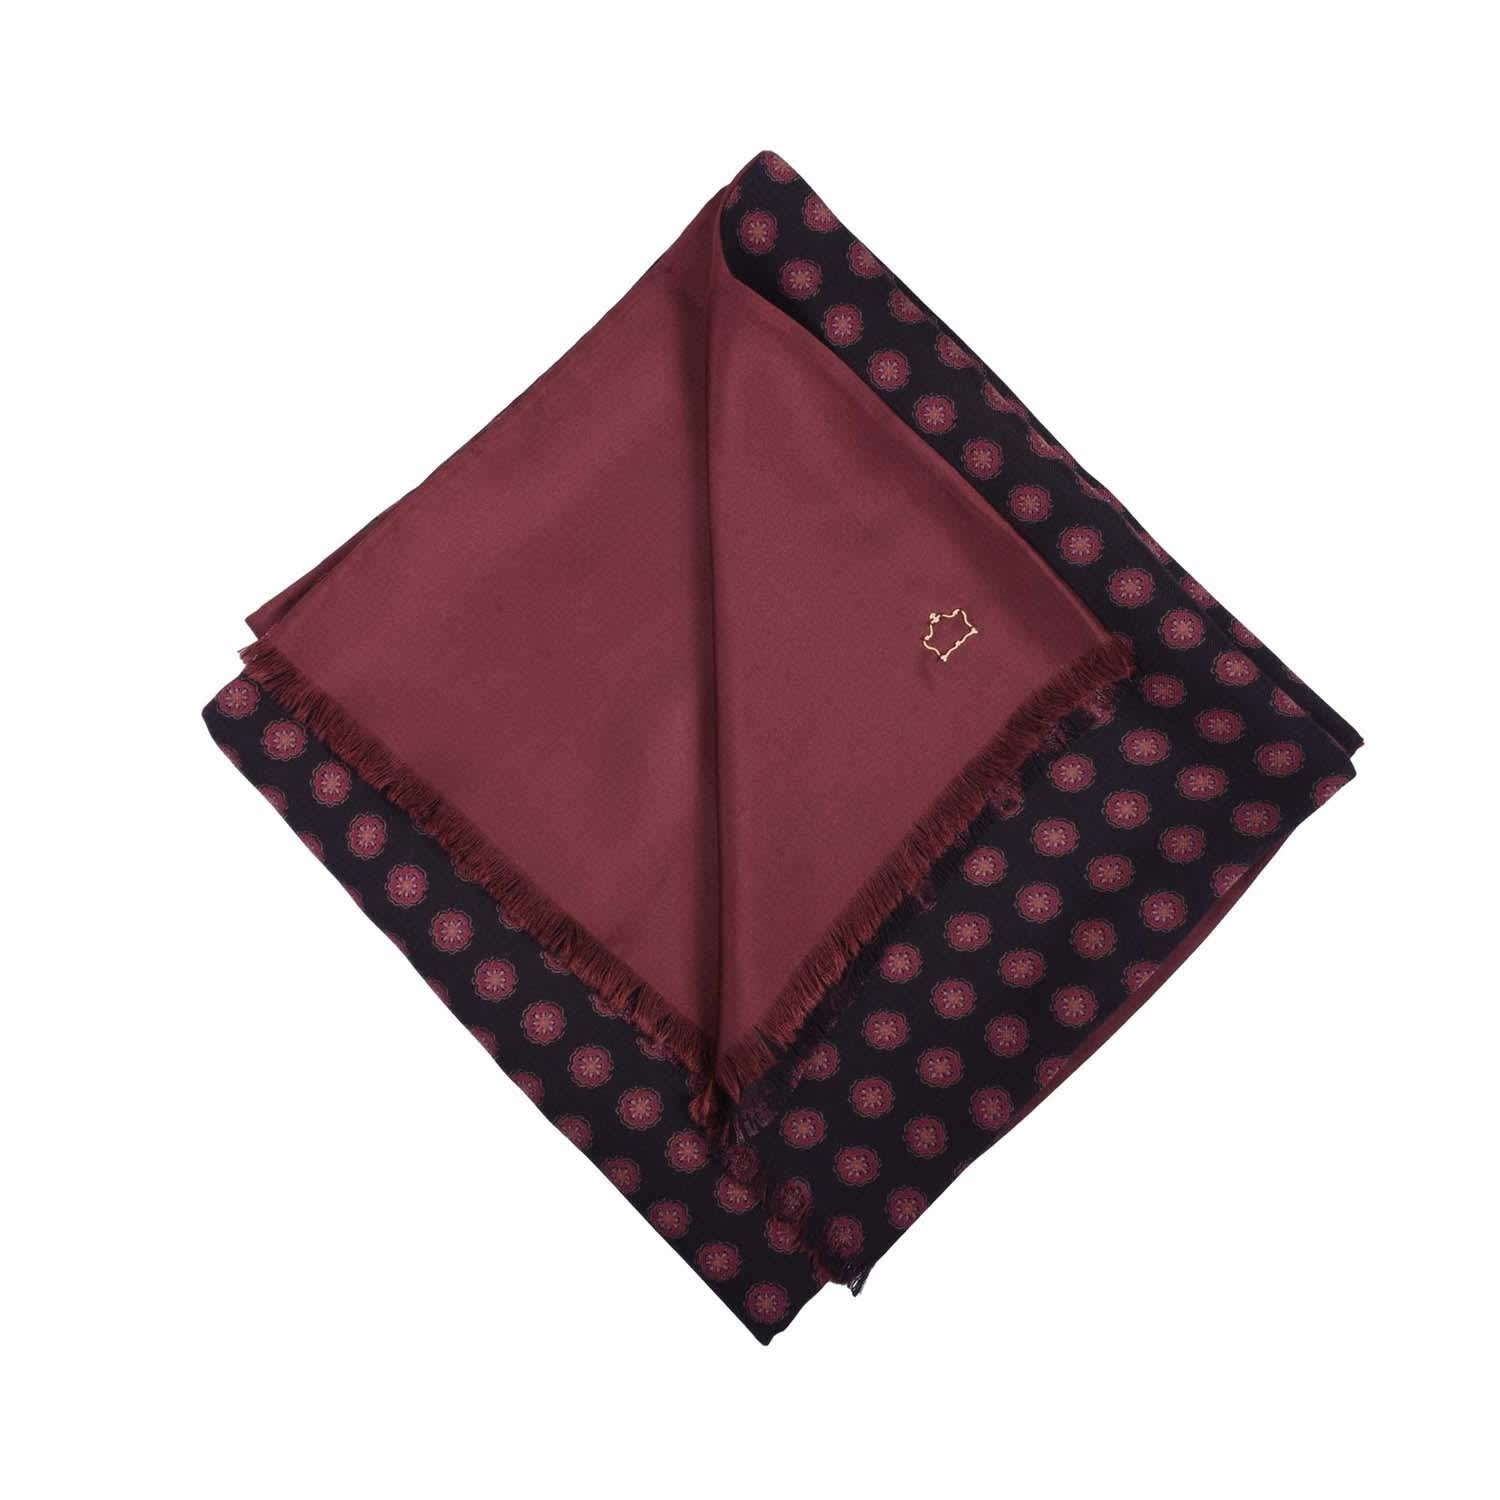 Dark Brown Burgundy Wool and Silk Scarf by Serà Fine Silk